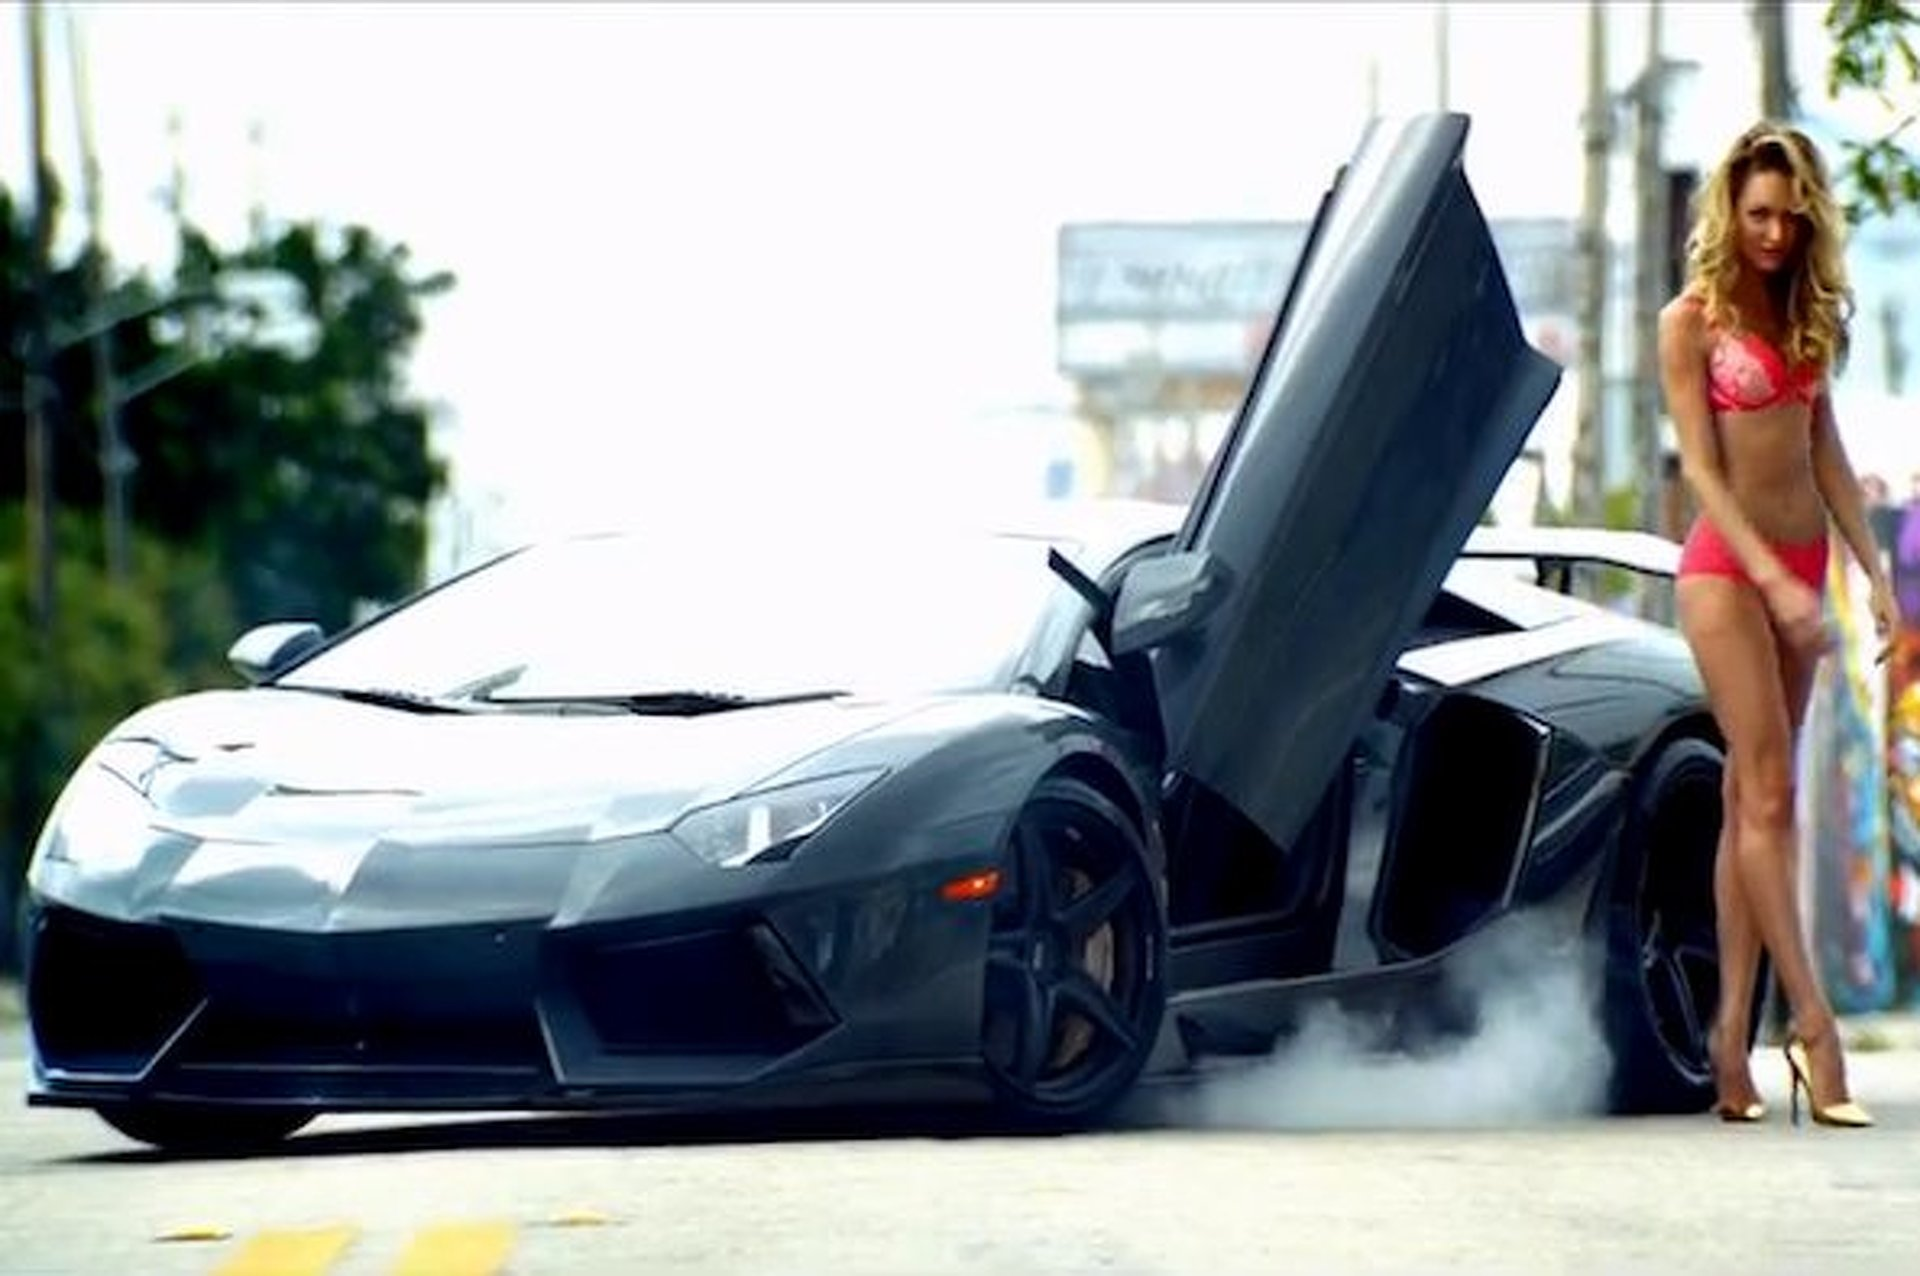 Video: DMC Aventador Plus Victoria's Secret Equals Pointless Sexy Goodness